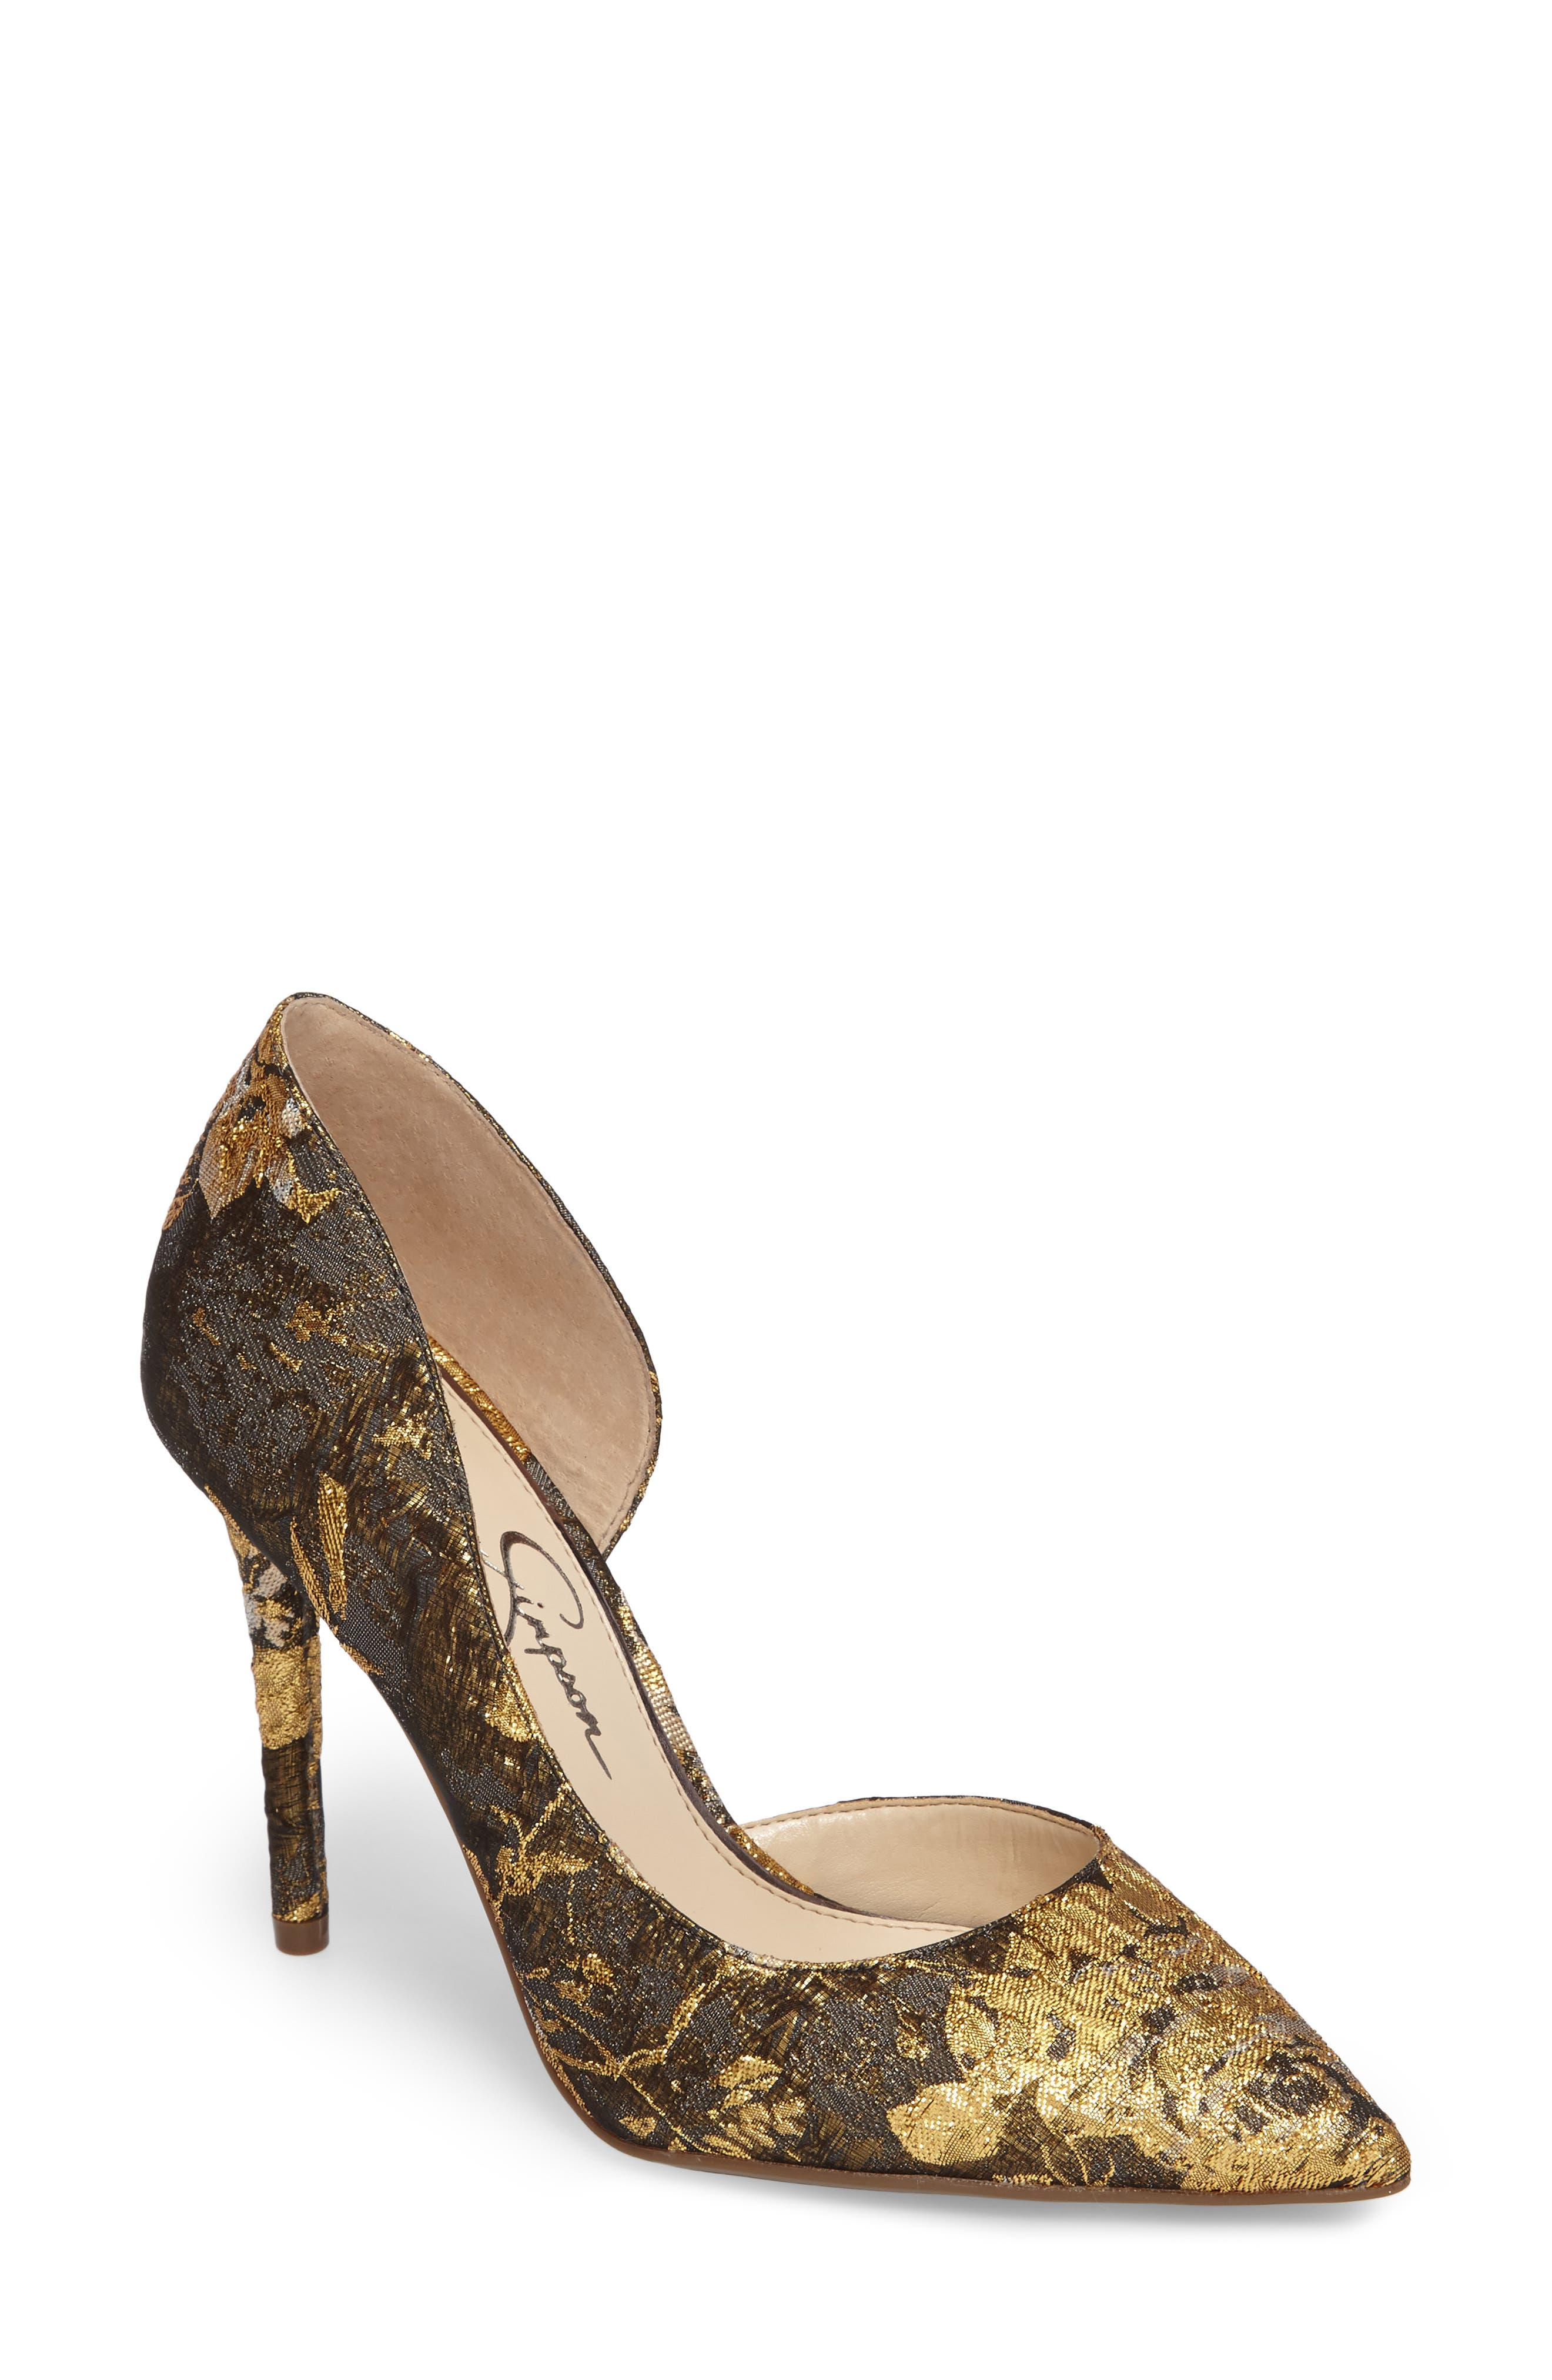 Alternate Image 1 Selected - Jessica Simpson Lucina Pump (Women)